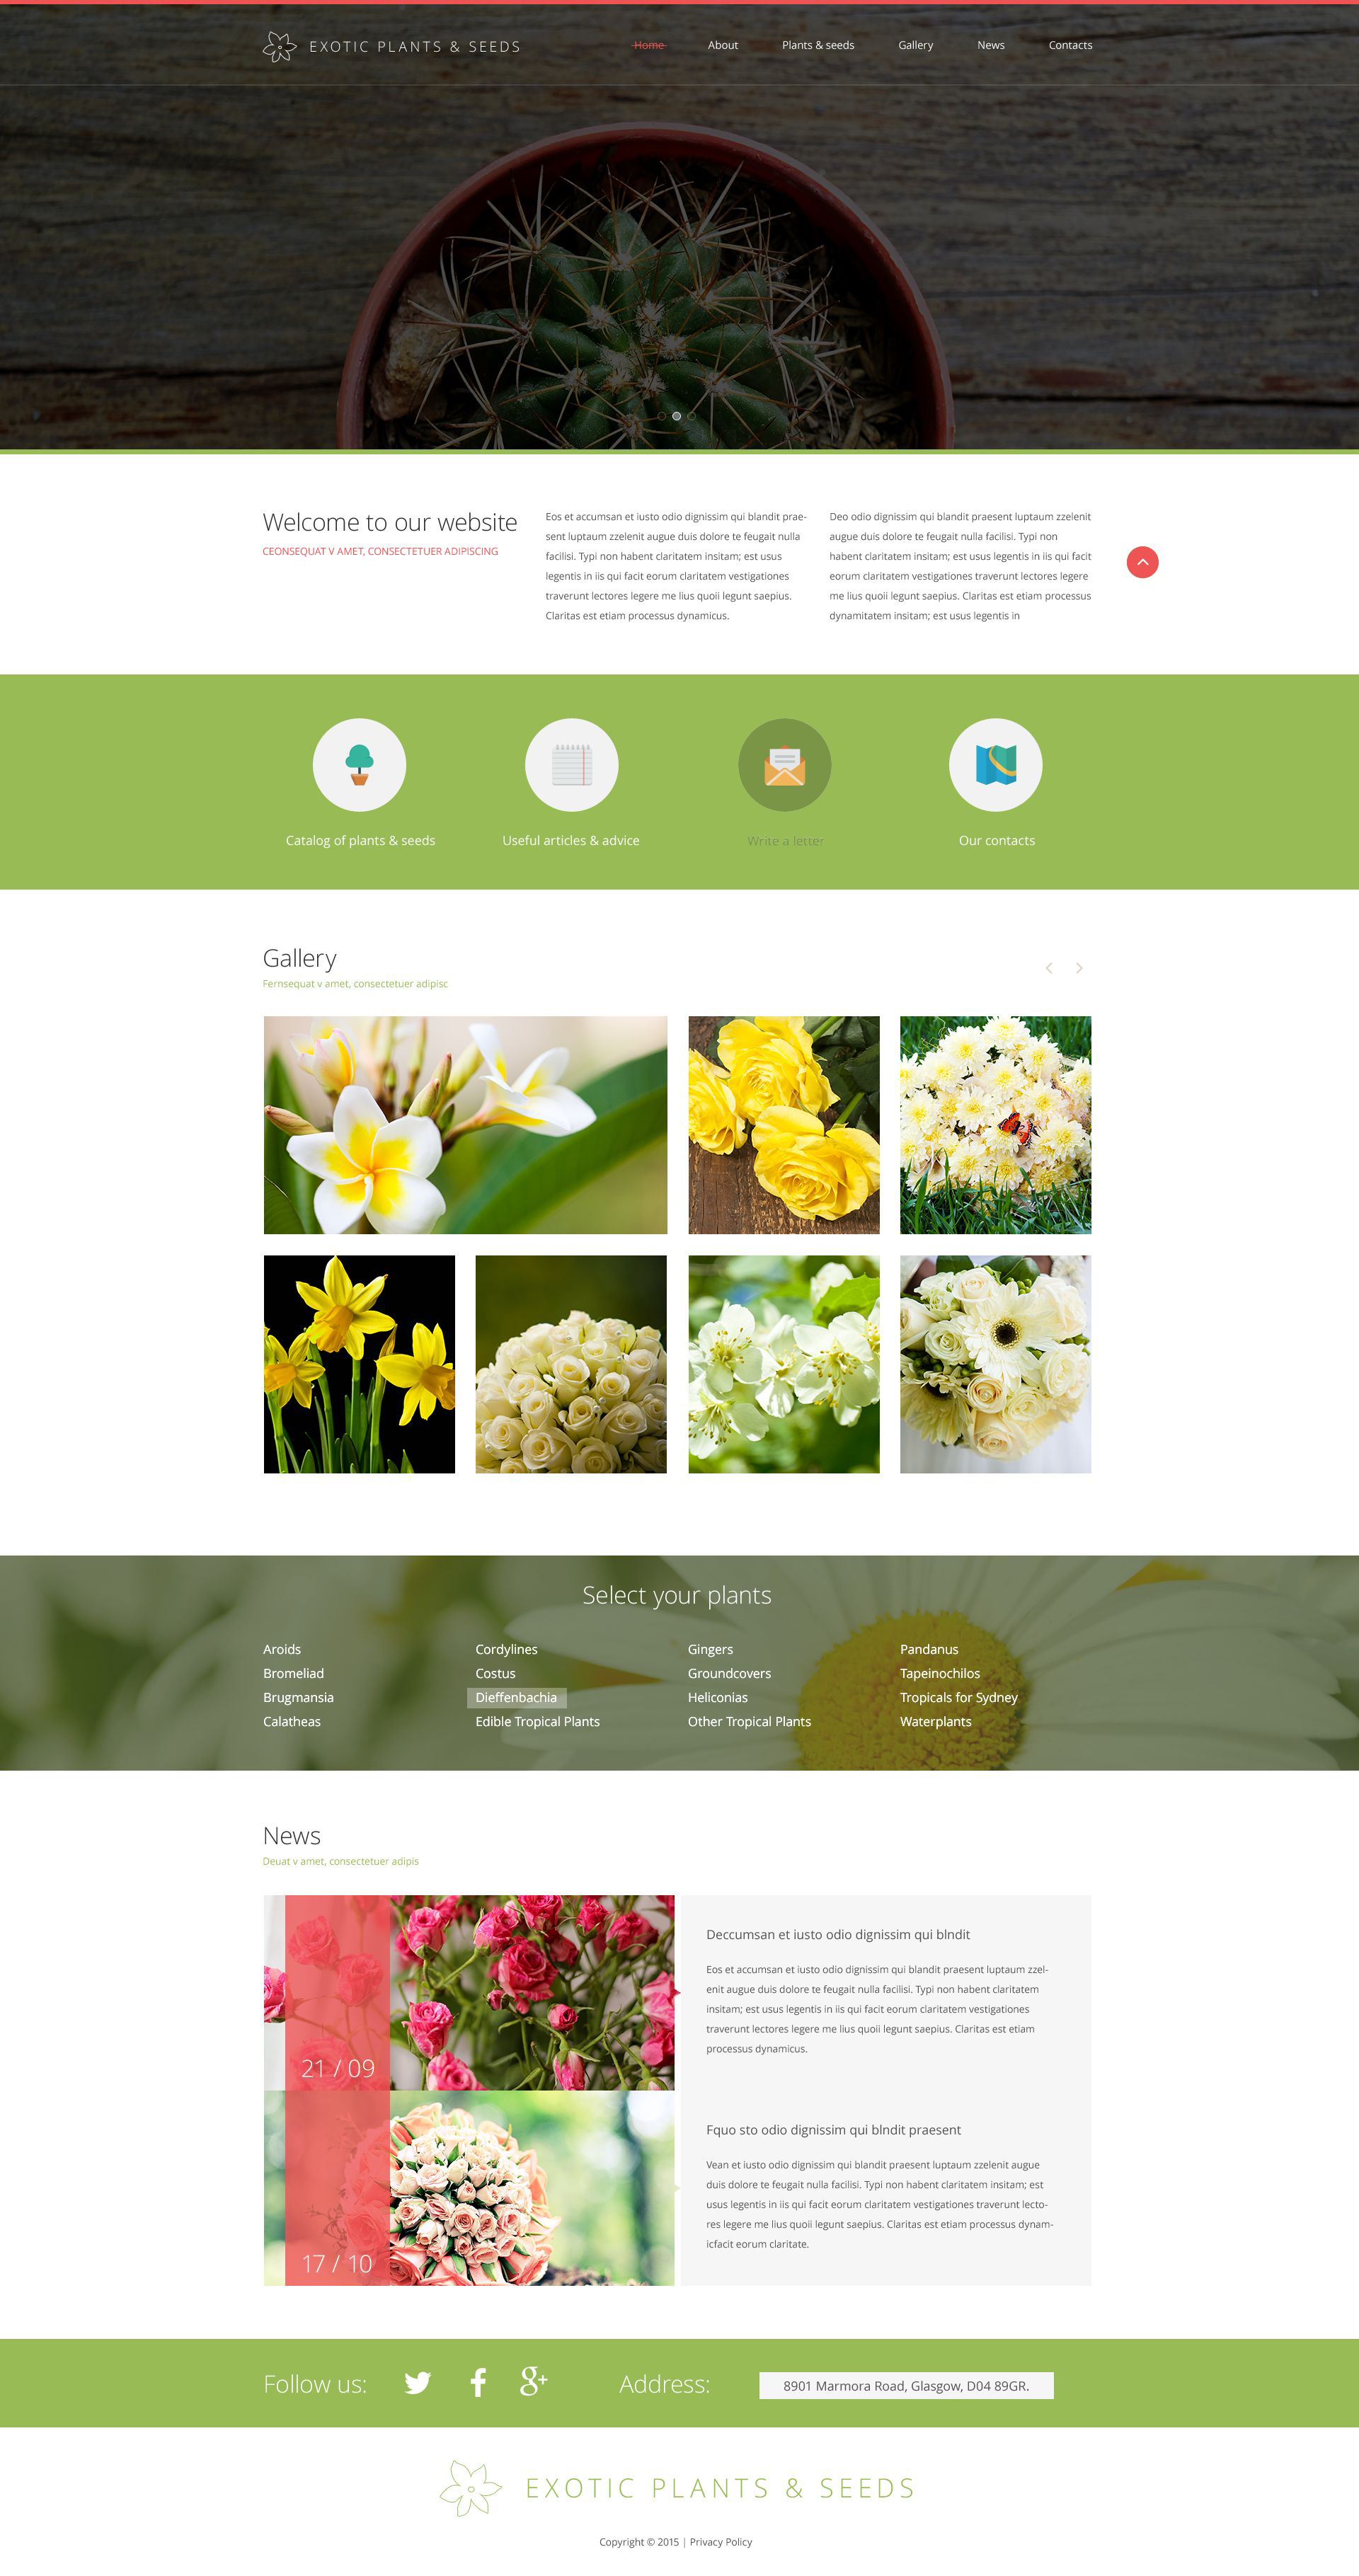 The Exotic Plants Seeds Garden Responsive Javascript Animated Design 53648, one of the best website templates of its kind (exterior design, most popular), also known as Exotic Plants Seeds garden website template, pont design website template, garden website template, exterior website template, landscape design website template, grass website template, clipper website template, lawn-mover website template, grass-cutter website template, lawn website template, garden website template, herb website template, shrub website template, tree website template, palm website template, planting website template, bamboo website template, fern company website template, profile website template, testimonials website template, education website template, work website template, team website template, staff website template, services website template, commercial website template, clients website template, residential website template, special technologies and related with Exotic Plants Seeds garden, pont design, garden, exterior, landscape design, grass, clipper, lawn-mover, grass-cutter, lawn, garden, herb, shrub, tree, palm, planting, bamboo, fern company, profile, testimonials, education, work, team, staff, services, commercial, clients, residential, special technologies, etc.